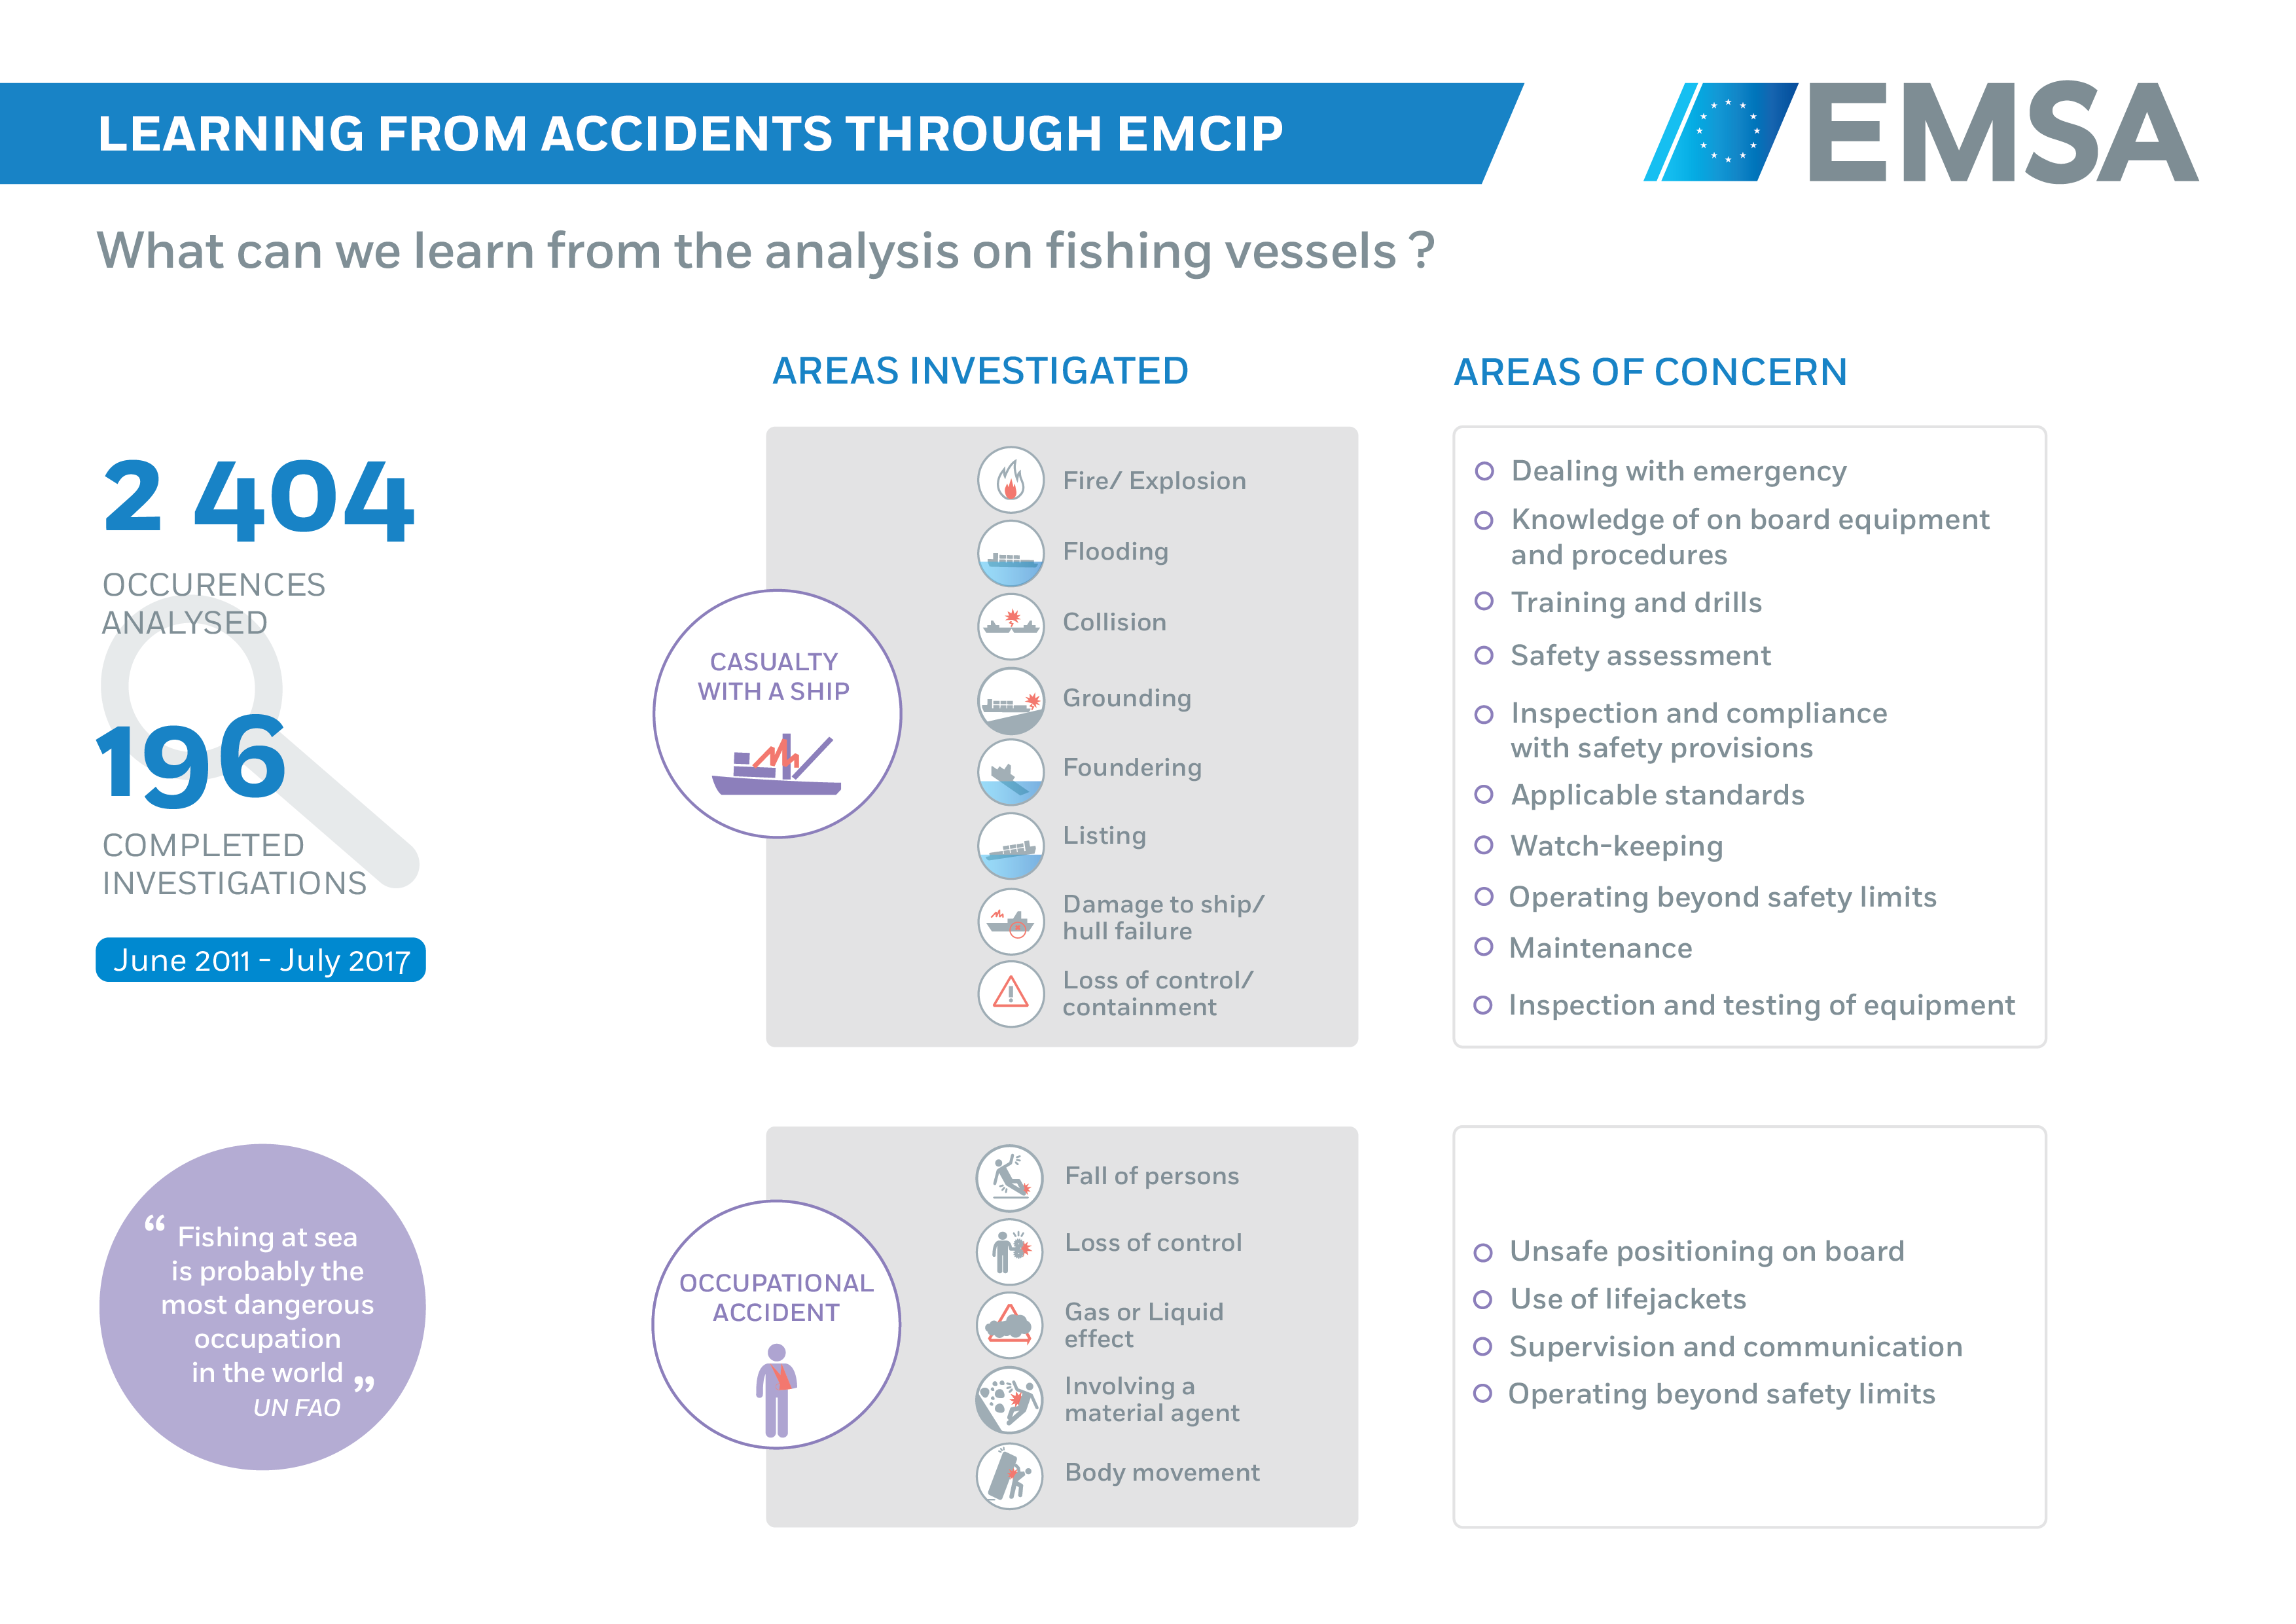 Learning from Accidents through EMCIP. What can we learn fro ... Image 1